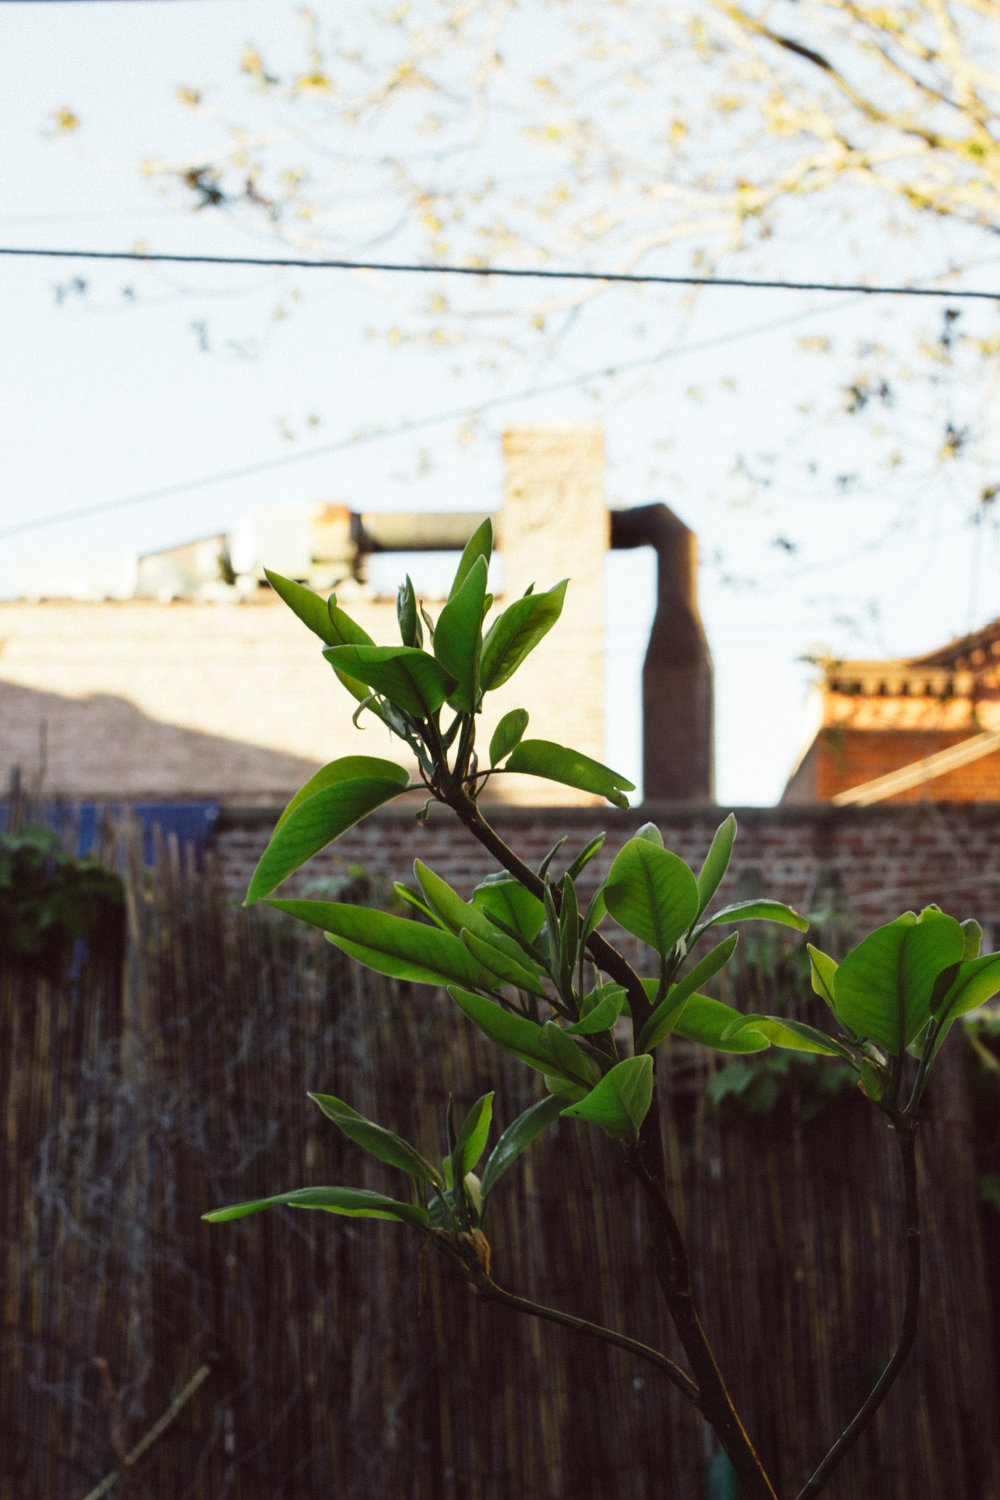 Magnolia tree now planted in the ground, in place of the dead tree. Hope to see it bloom again this year.